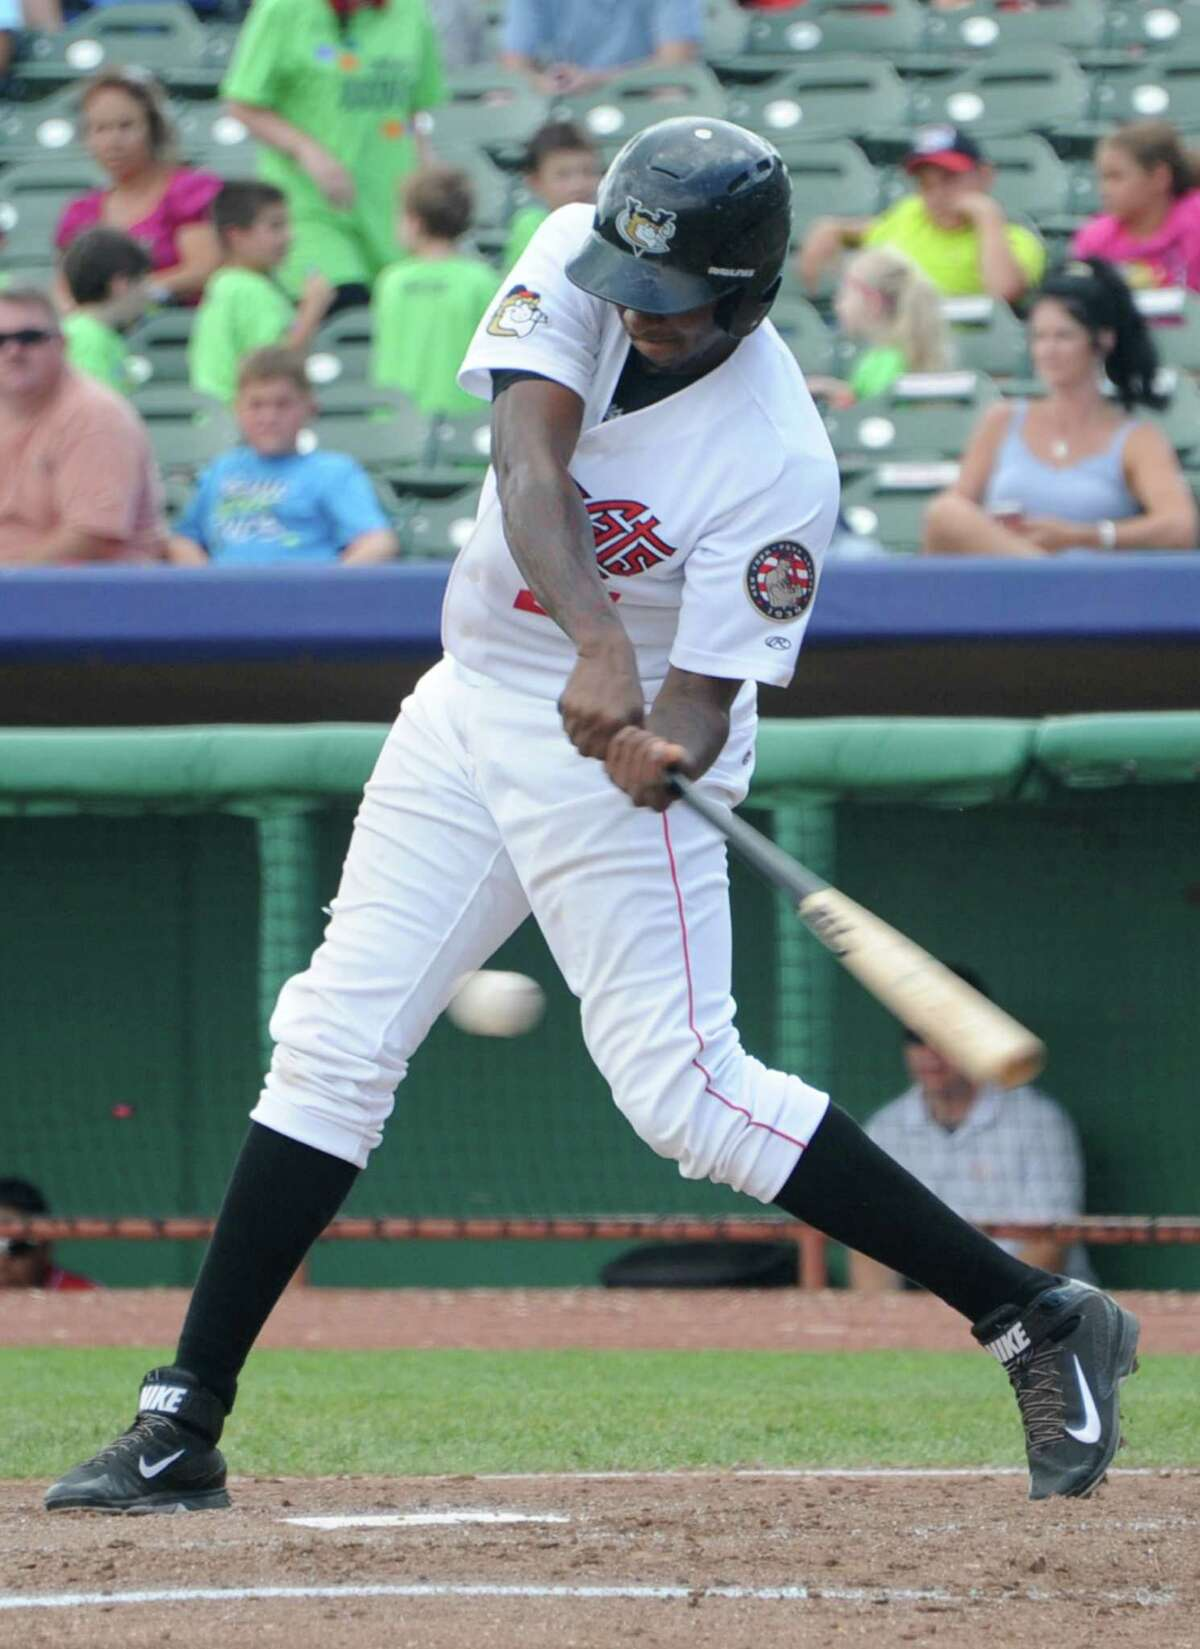 Tri-City ValleyCats right fielder Ariel Ovando connects with the ball for a single during a game against the Batavia Muckdogs at the Joe Bruno Stadium on Monday, Aug. 4, 2014 in Troy, N.Y. (Lori Van Buren / Times Union)